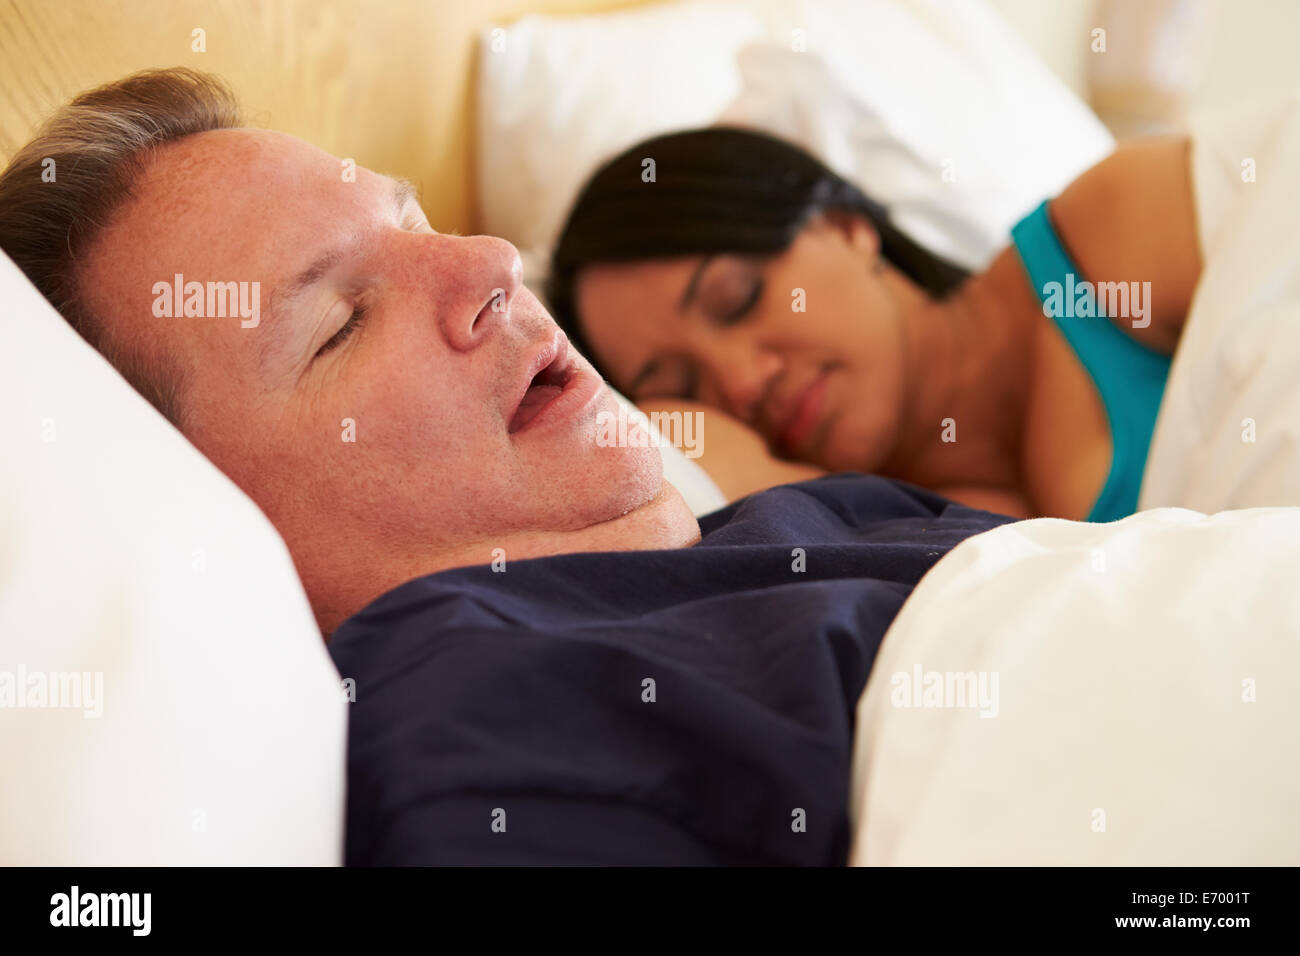 Couple Asleep In Bed With Man Snoring - Stock Image